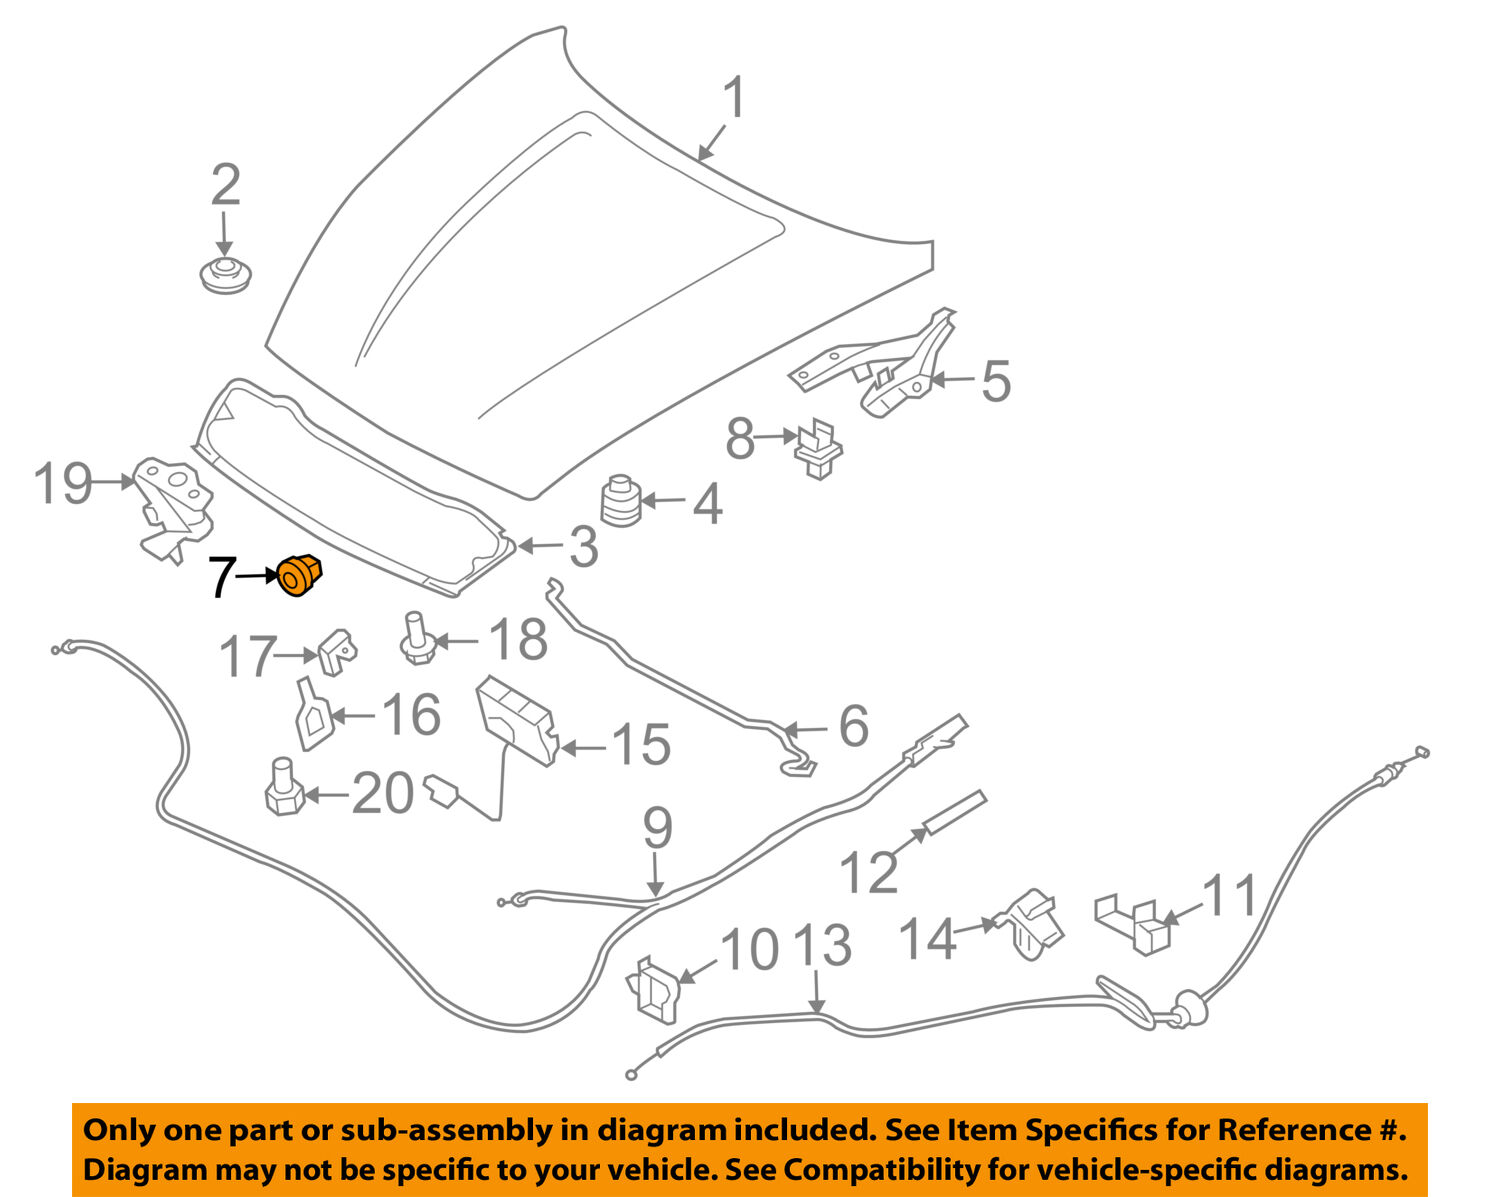 Nissan Oem 09 16 370z Hood Support Prop Rod Grommet 65773ax000 3 1 Engine Diagram Of 2free Shipping